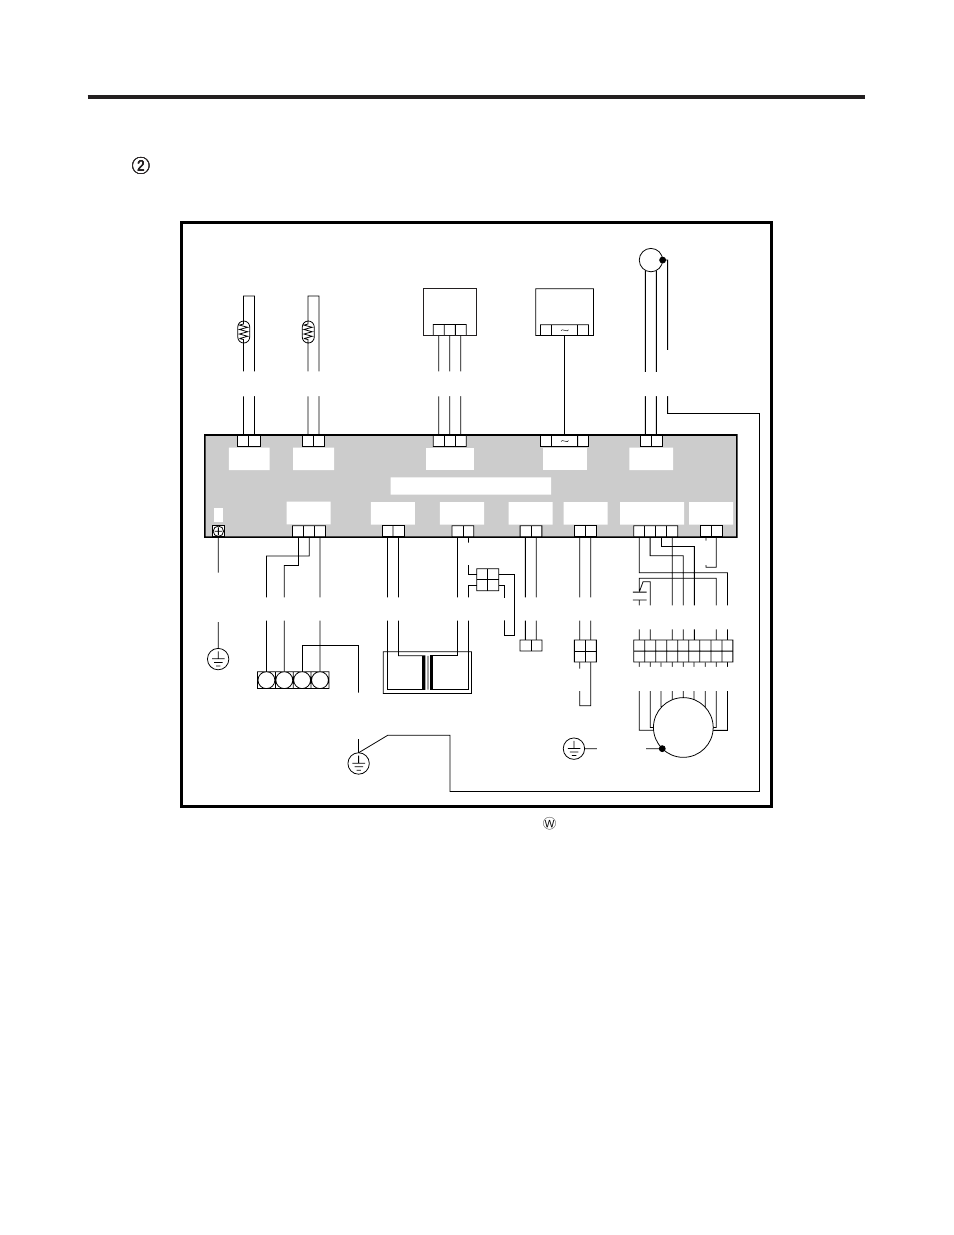 electric wiring diagram  electrical wiring diagrams  controller  cr